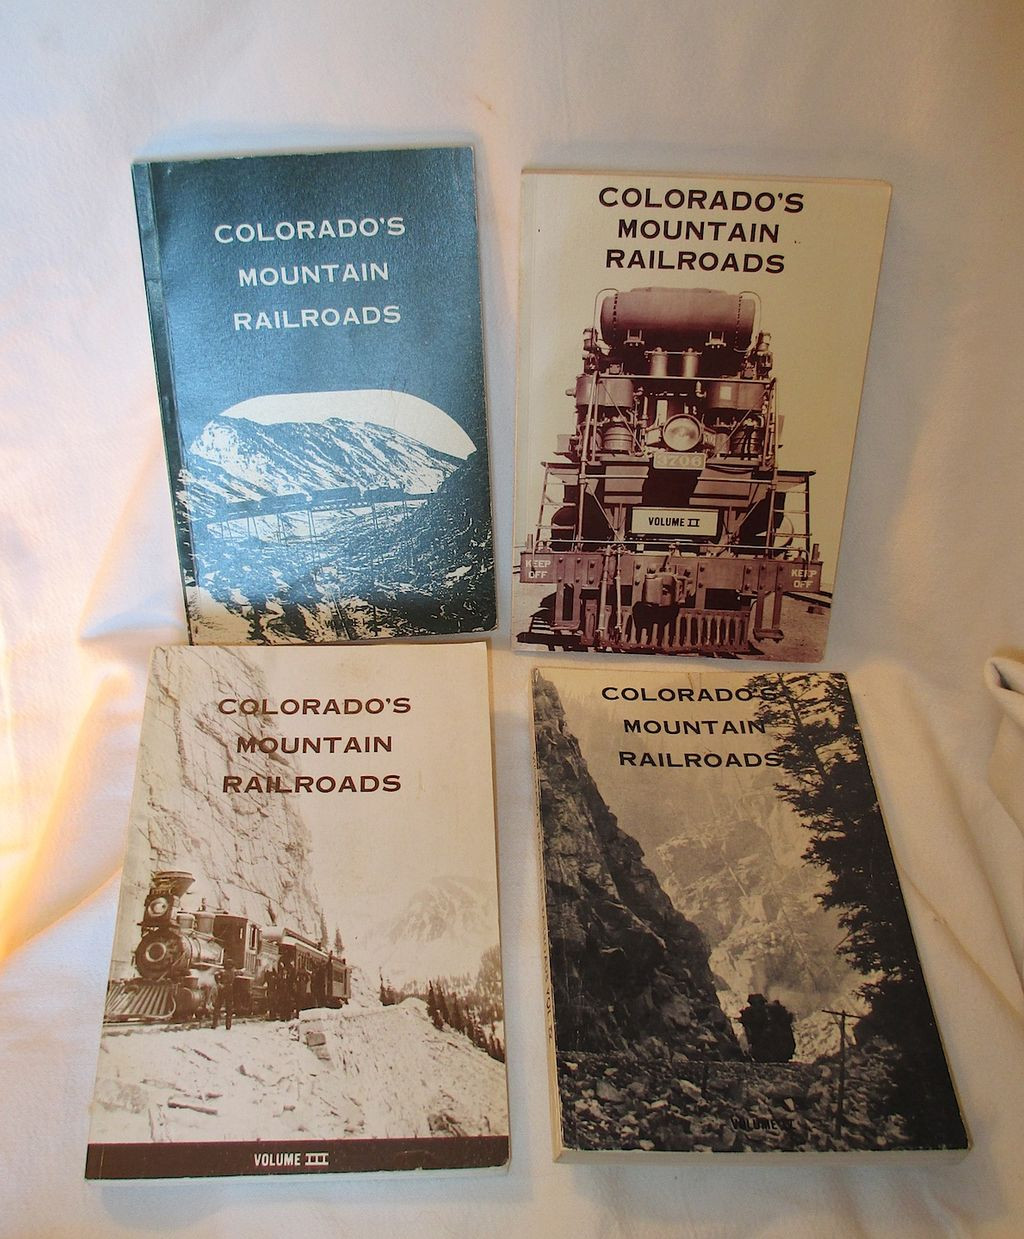 Colorado Railroad Books - collection of 5 books